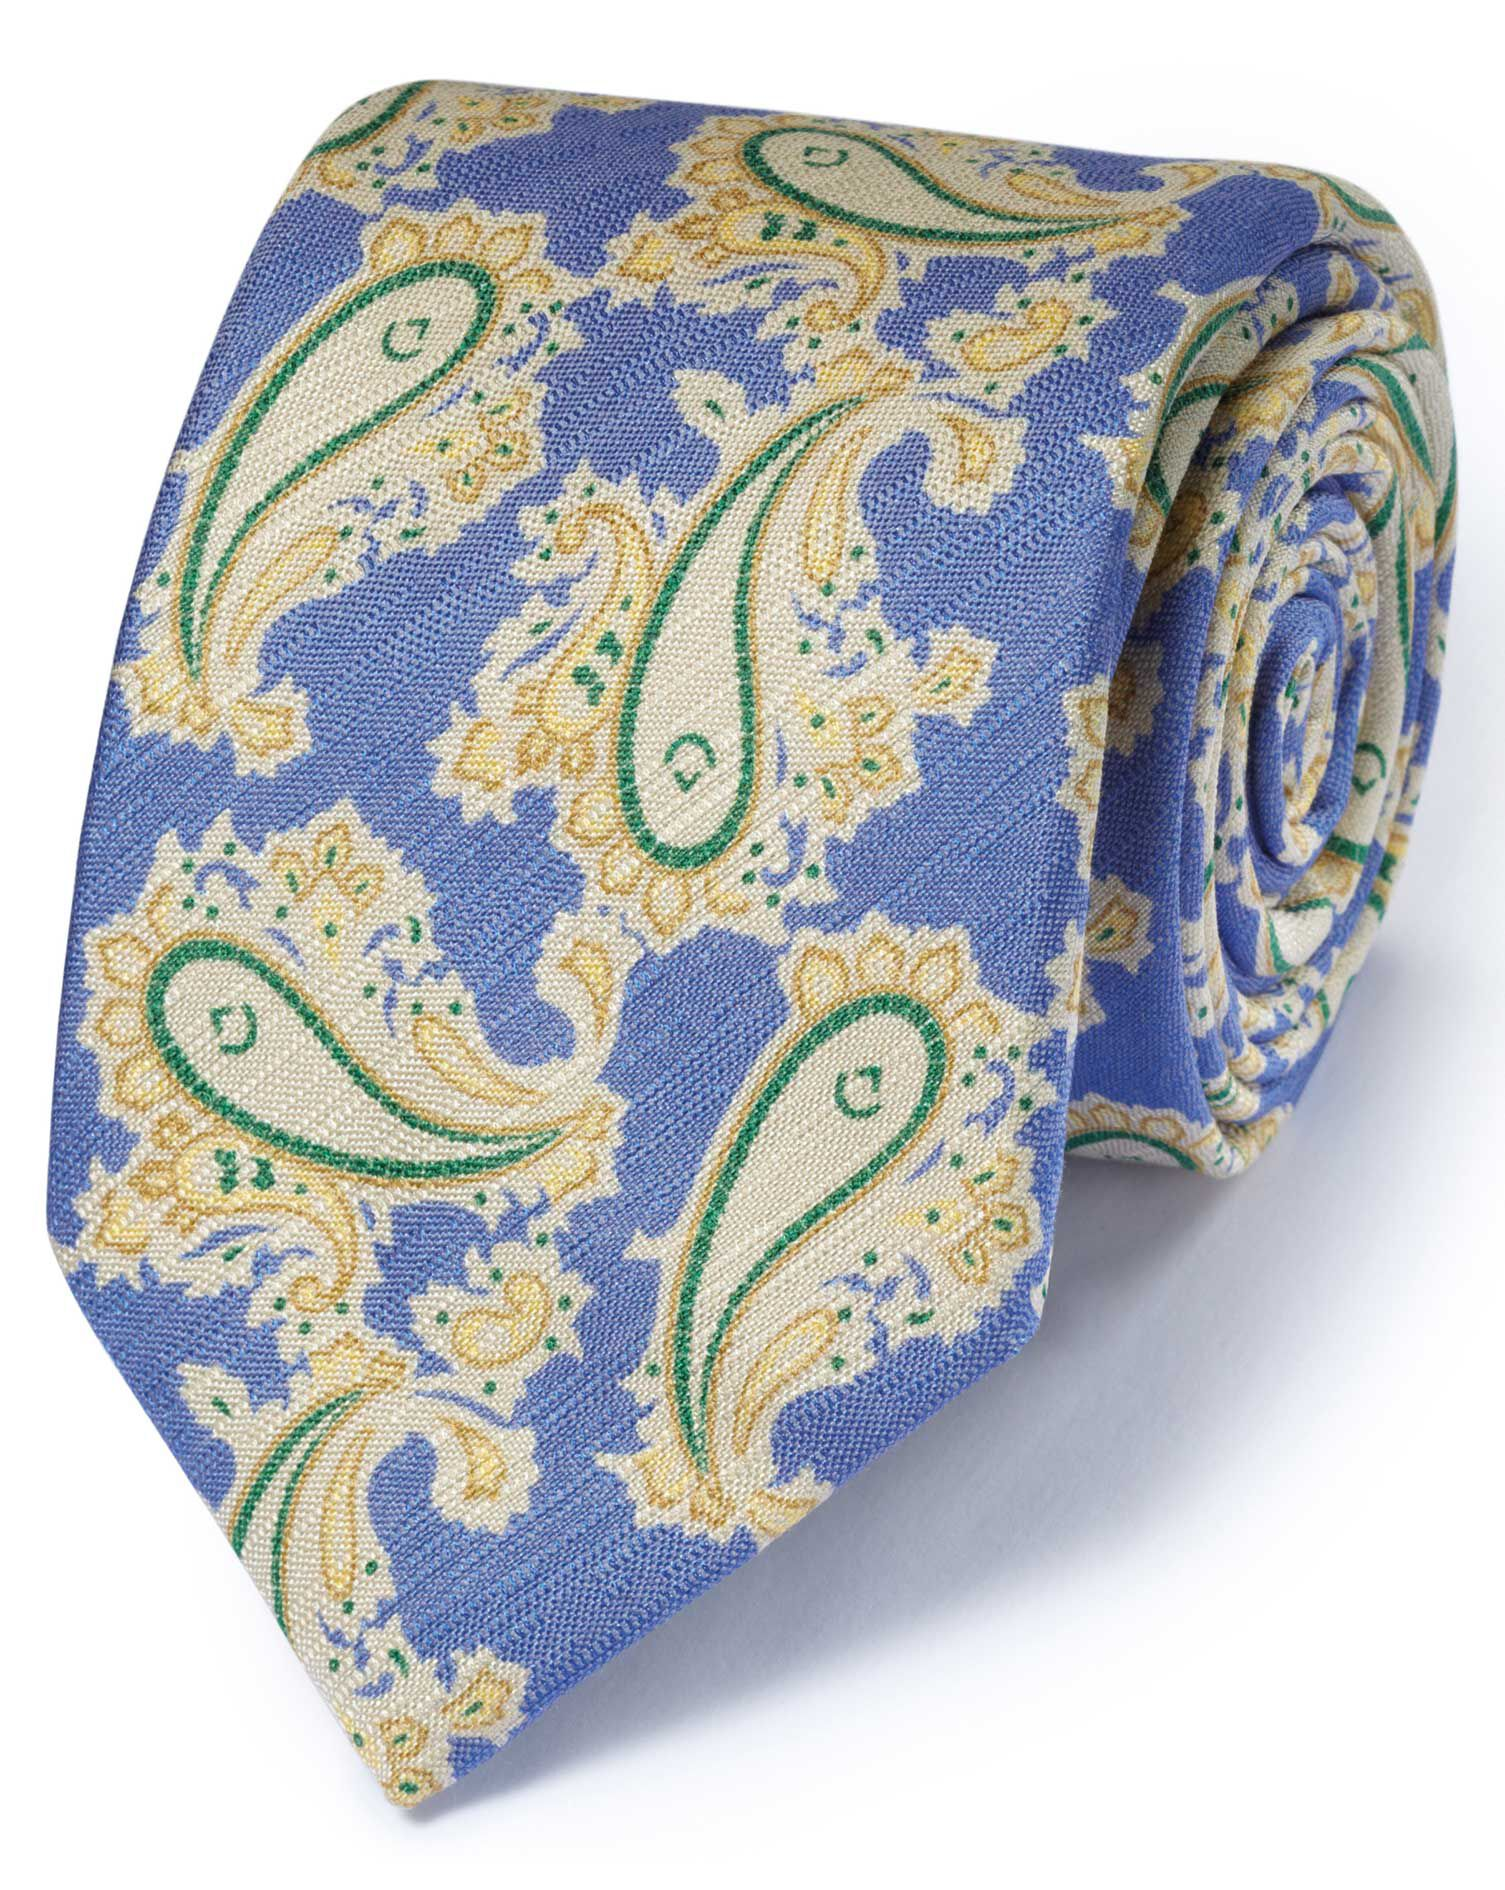 Blue Cotton Mix Printed Floral Italian Luxury Tie Size OSFA by Charles Tyrwhitt